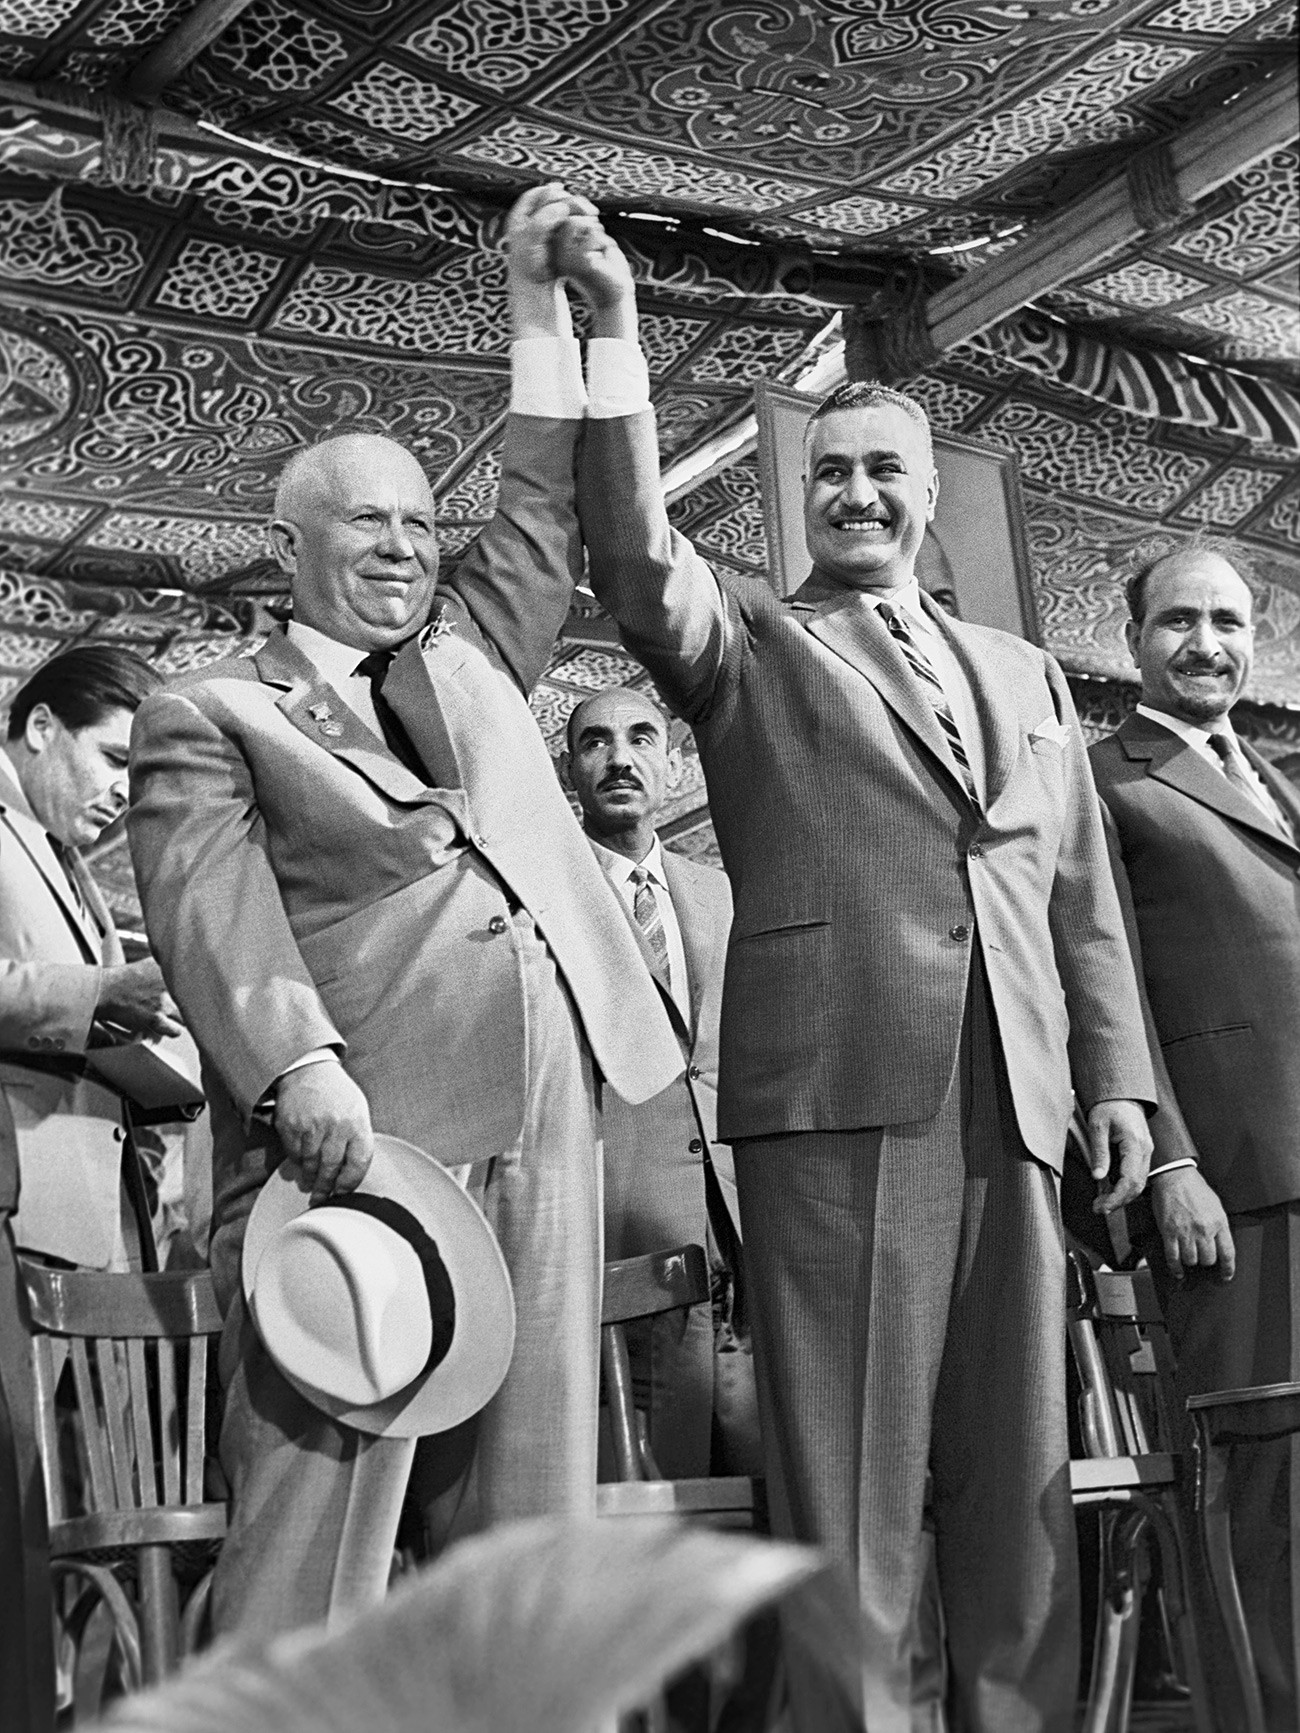 Gamal Abdel Nasser of Egypt was the first African leader to establish friendly relations with the USSR.